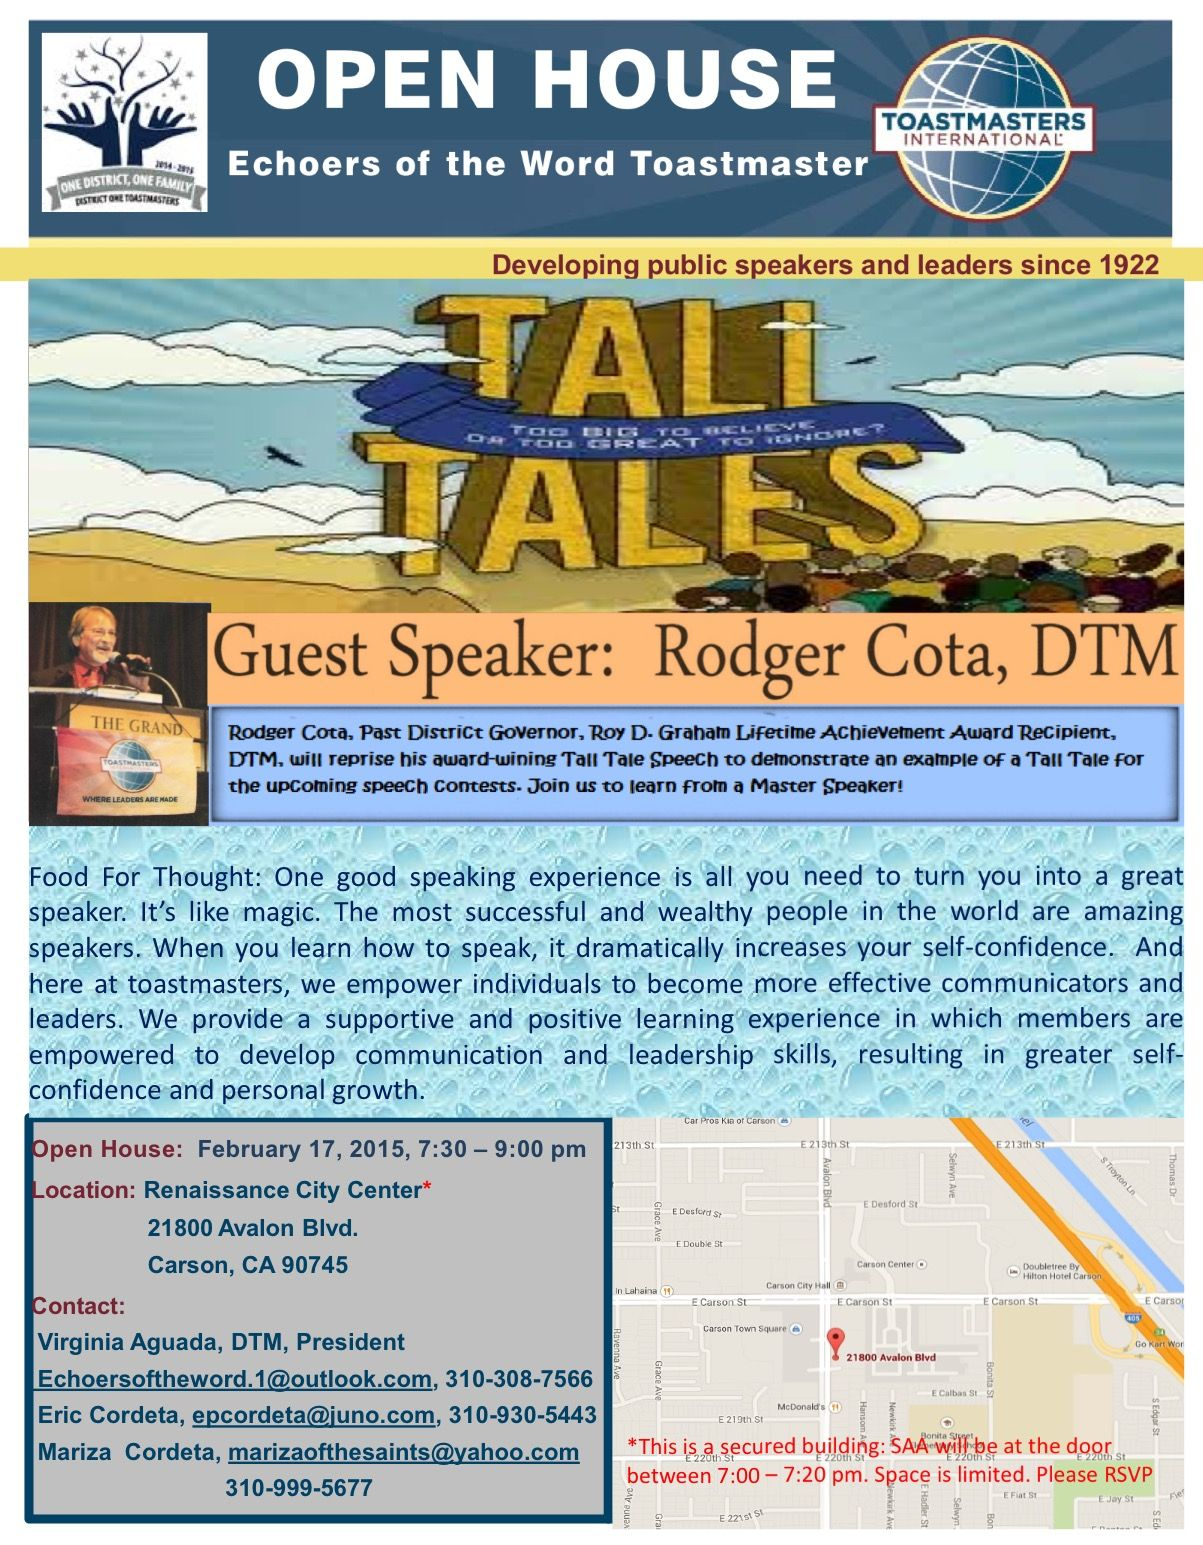 Open House Echoers Of The Word Toastmaster Featuring Rodger Cota Food For Thought One Good Speaking Experience Is A Open House Fun To Be One Great Speakers